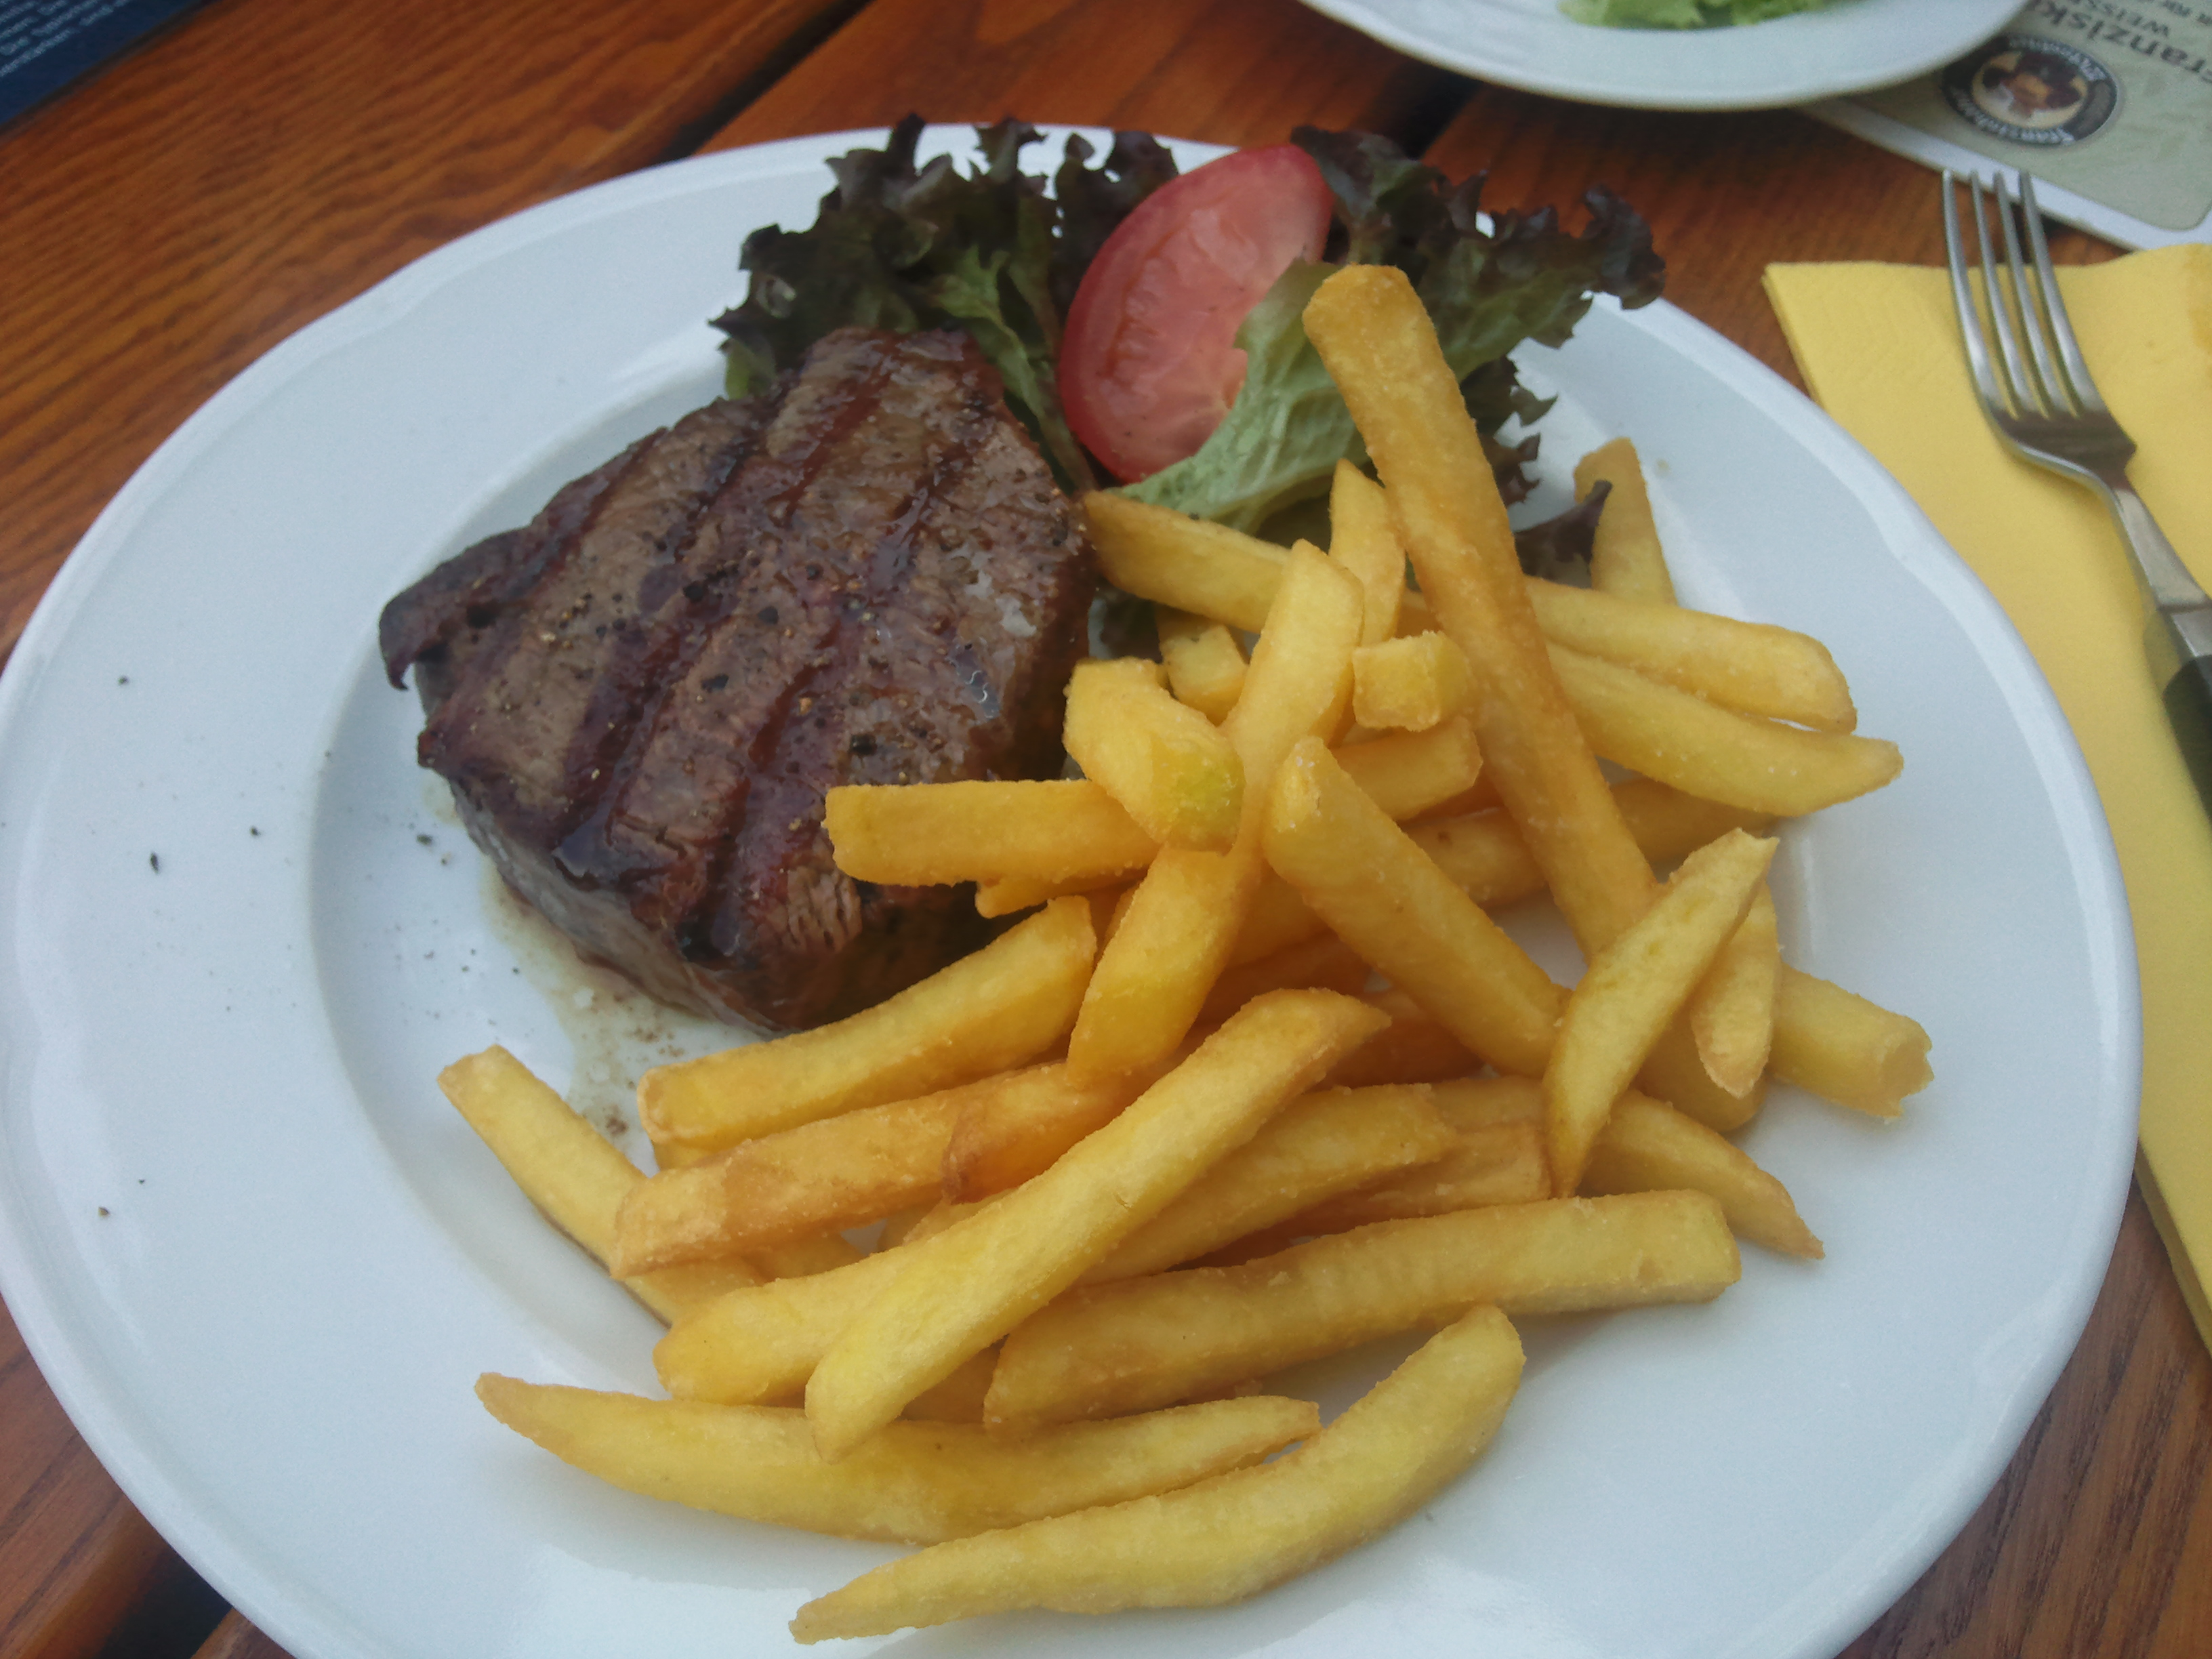 http://foodloader.net/Fire243_2010-07-05_Maredo_Filetsteak_180_g.jpg